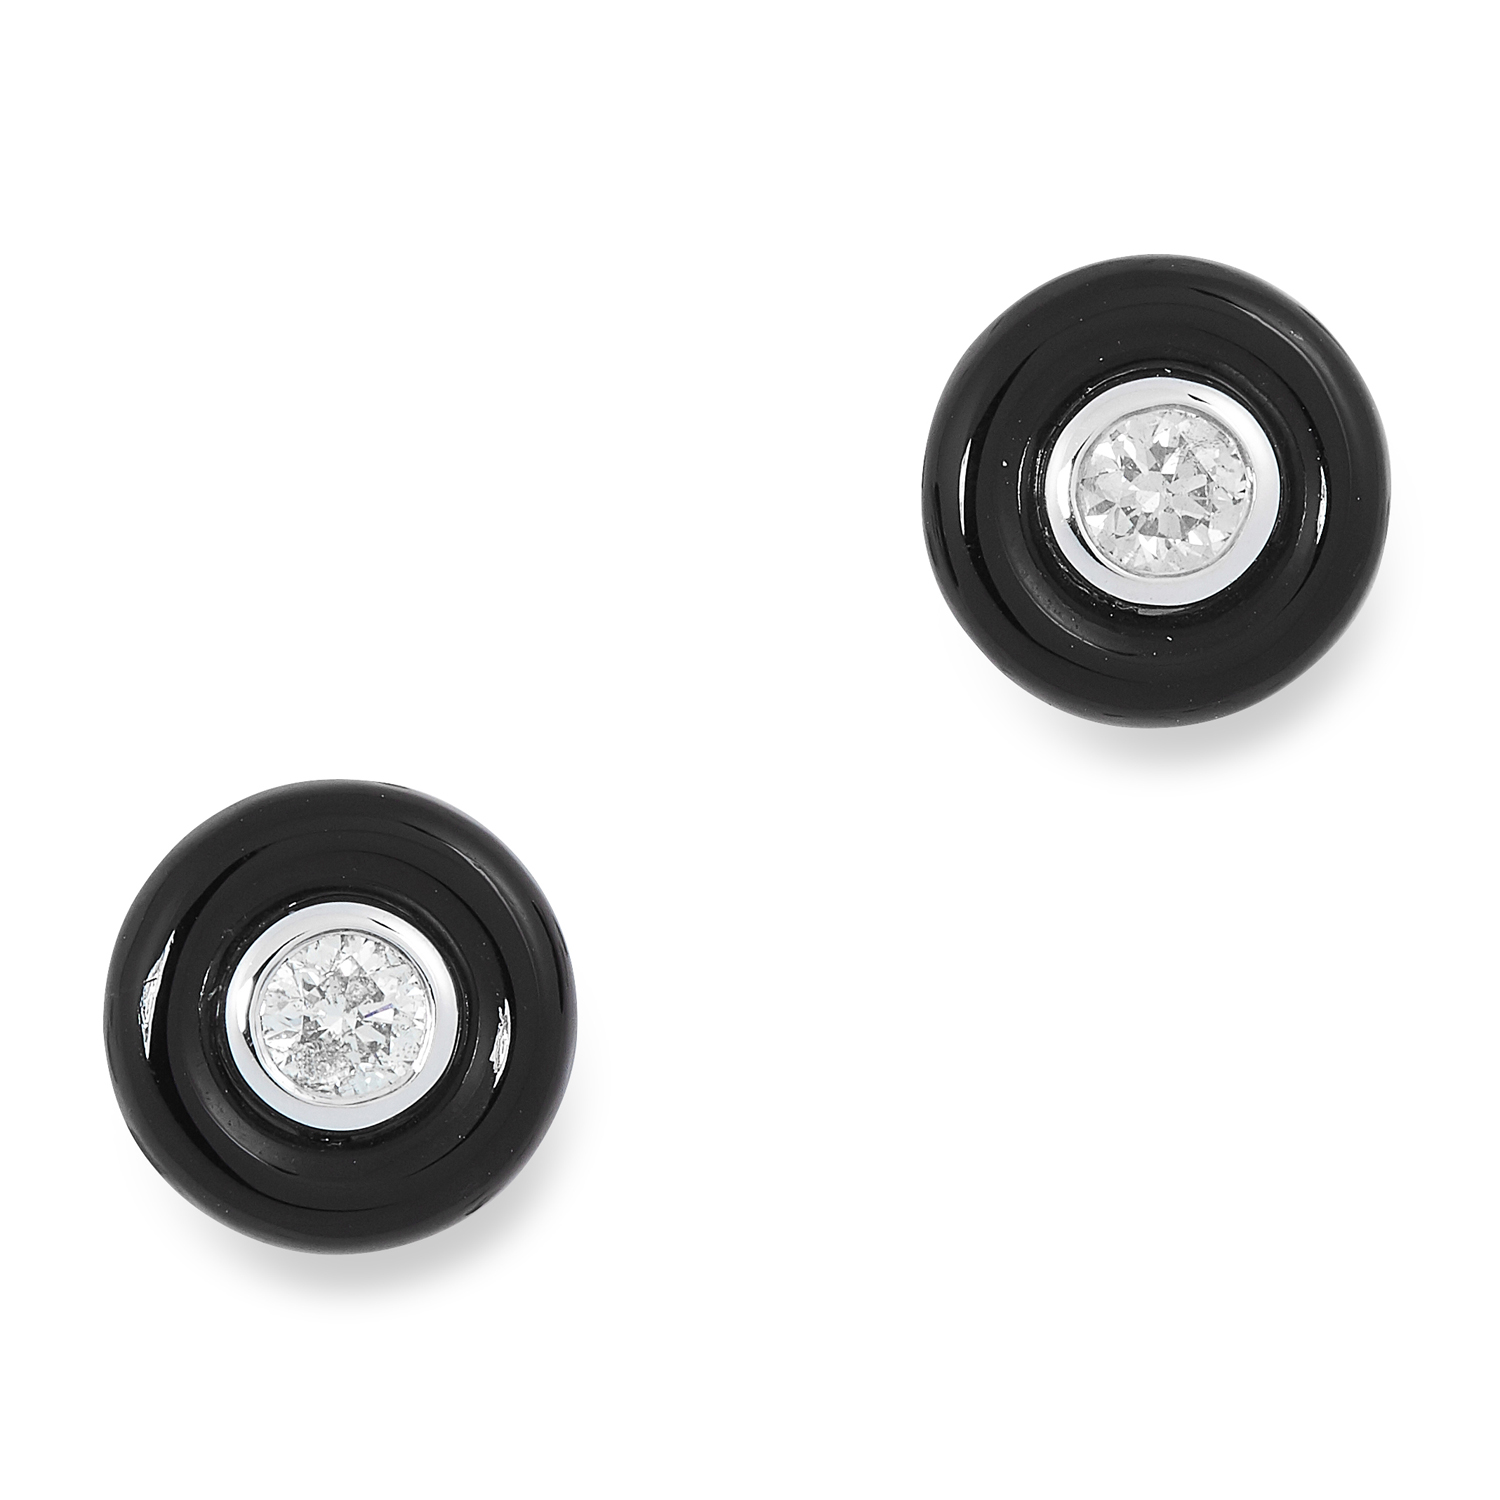 A PAIR OF ONYX AND DIAMOND STUD EARRINGS comprising of a round polished onyx set with a central